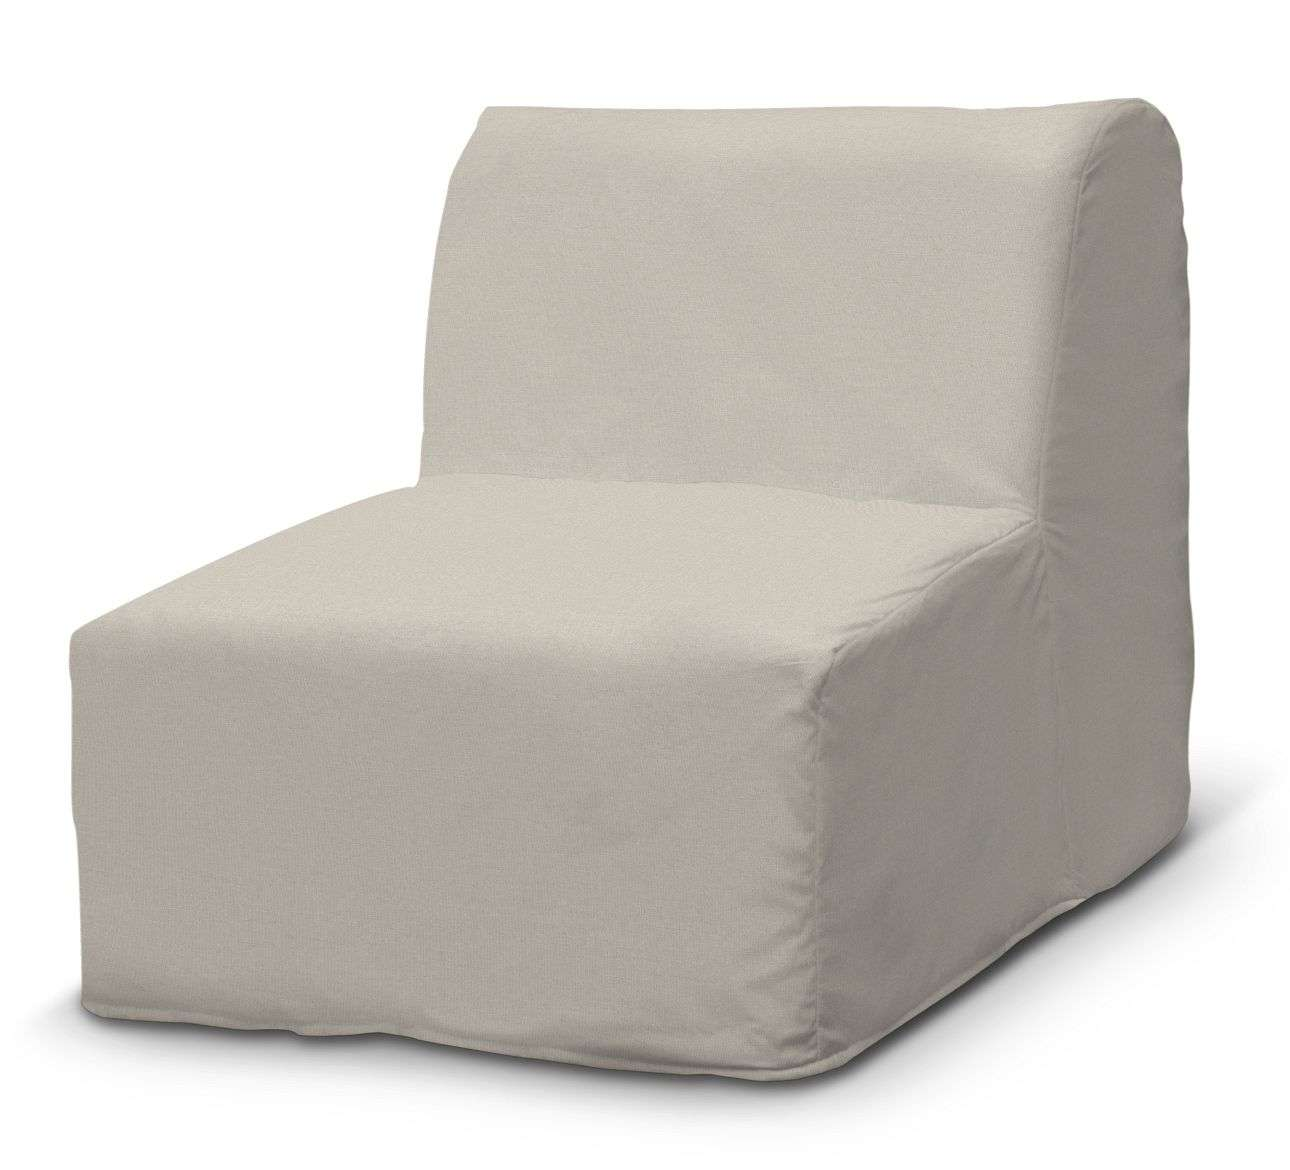 Lycksele chair cover in collection Vintage, fabric: 702-39